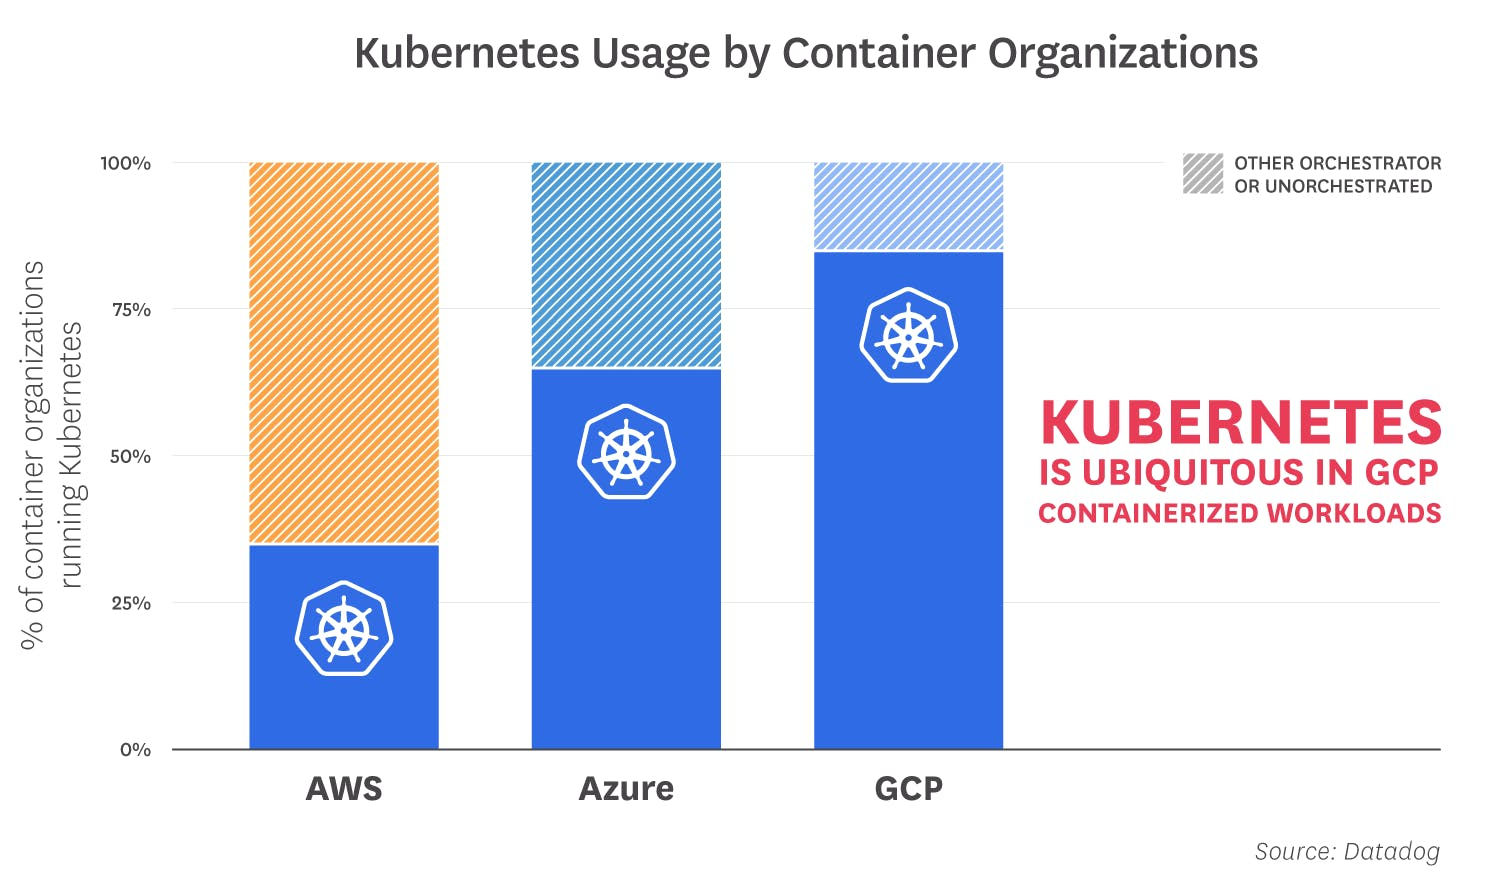 container-orchestration-2018/orchestration-2018-fact-1-v3.png